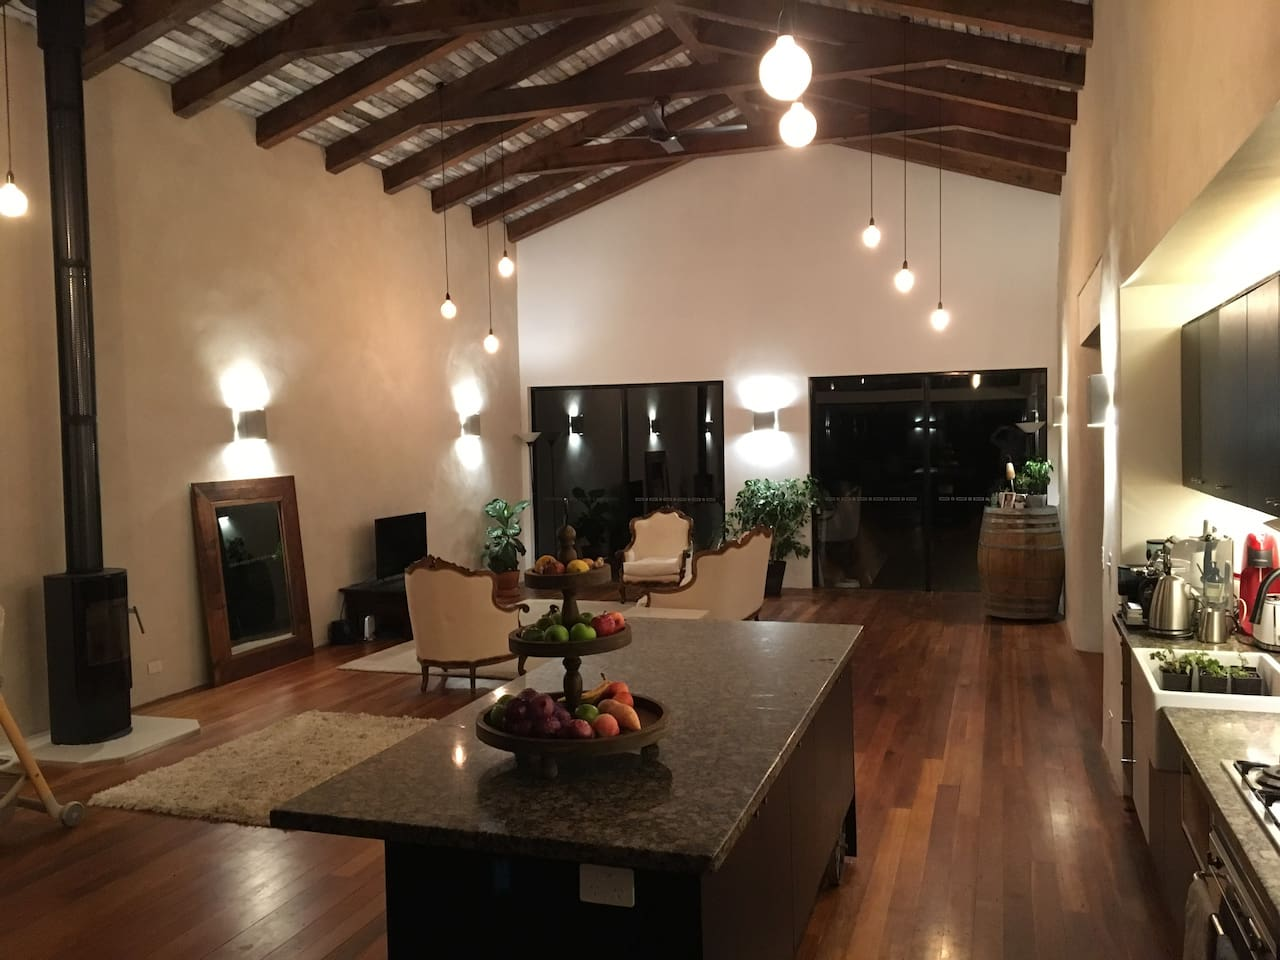 The open-plan living room / kitchen / dining room by night